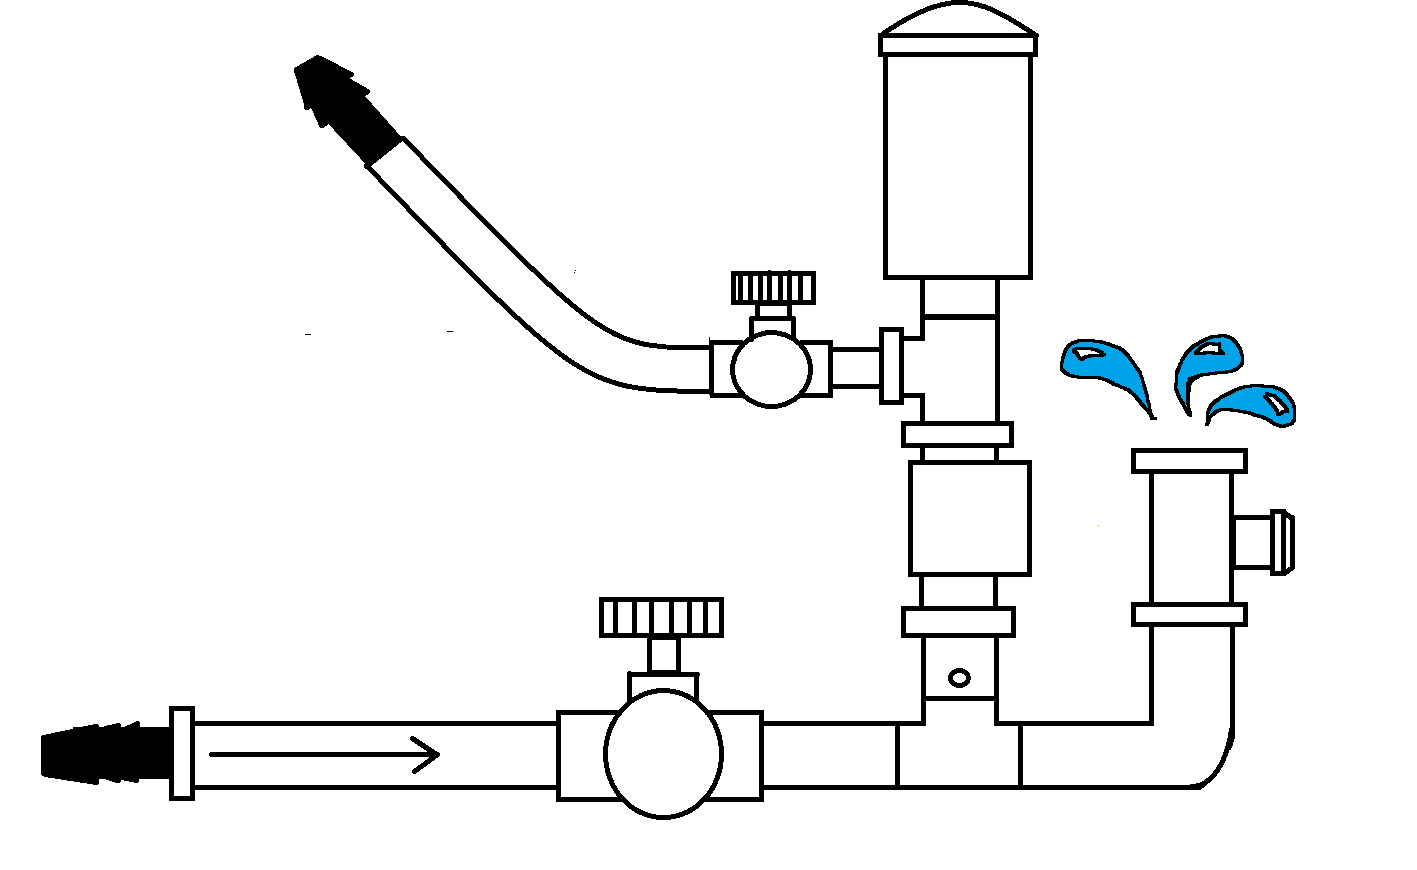 hight resolution of plain hydraulic ram design concept